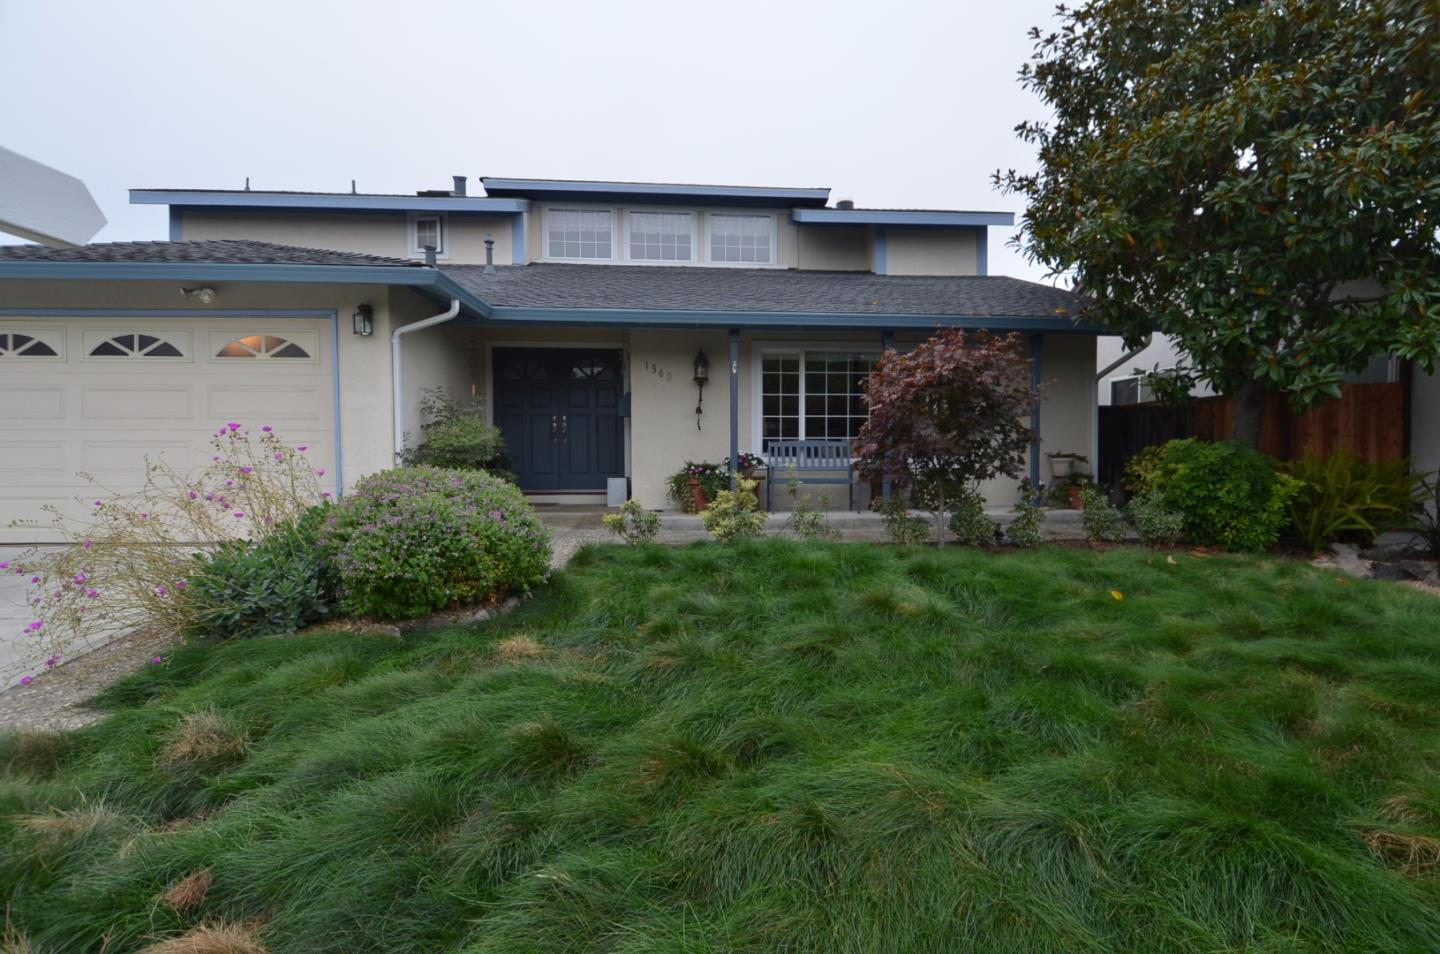 Single Family Home for Sale at 1360 Swordfish Street 1360 Swordfish Street Foster City, California 94404 United States